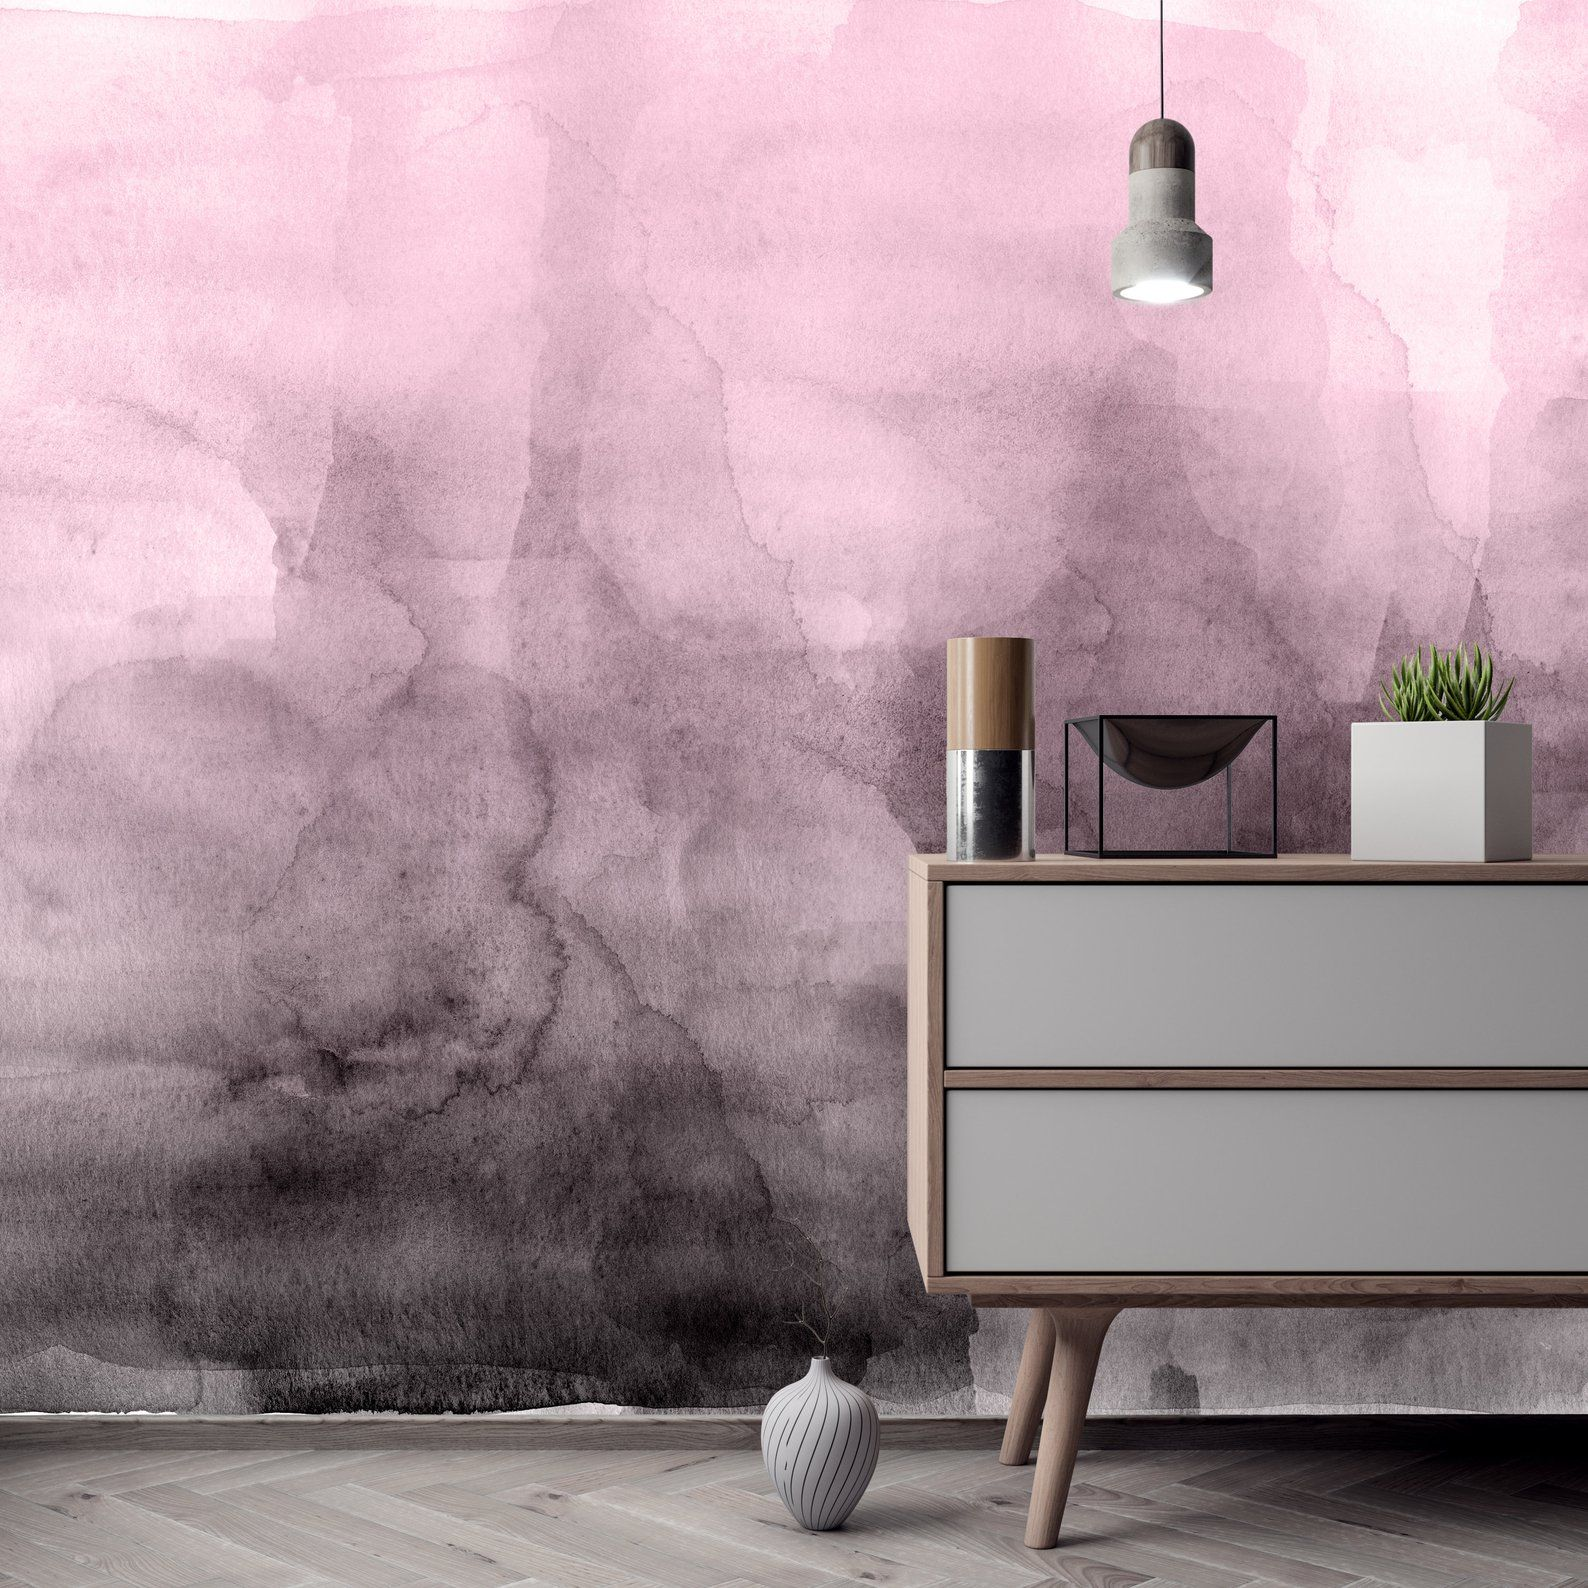 Pink Quartz Ombre Wallpaper Luxury Removable Peel And Stick Self Adhesive Temporary Wall Mural Fabric Sku Wtcpkqtz Ombre Wallpapers Wall Murals Temporary Decorating